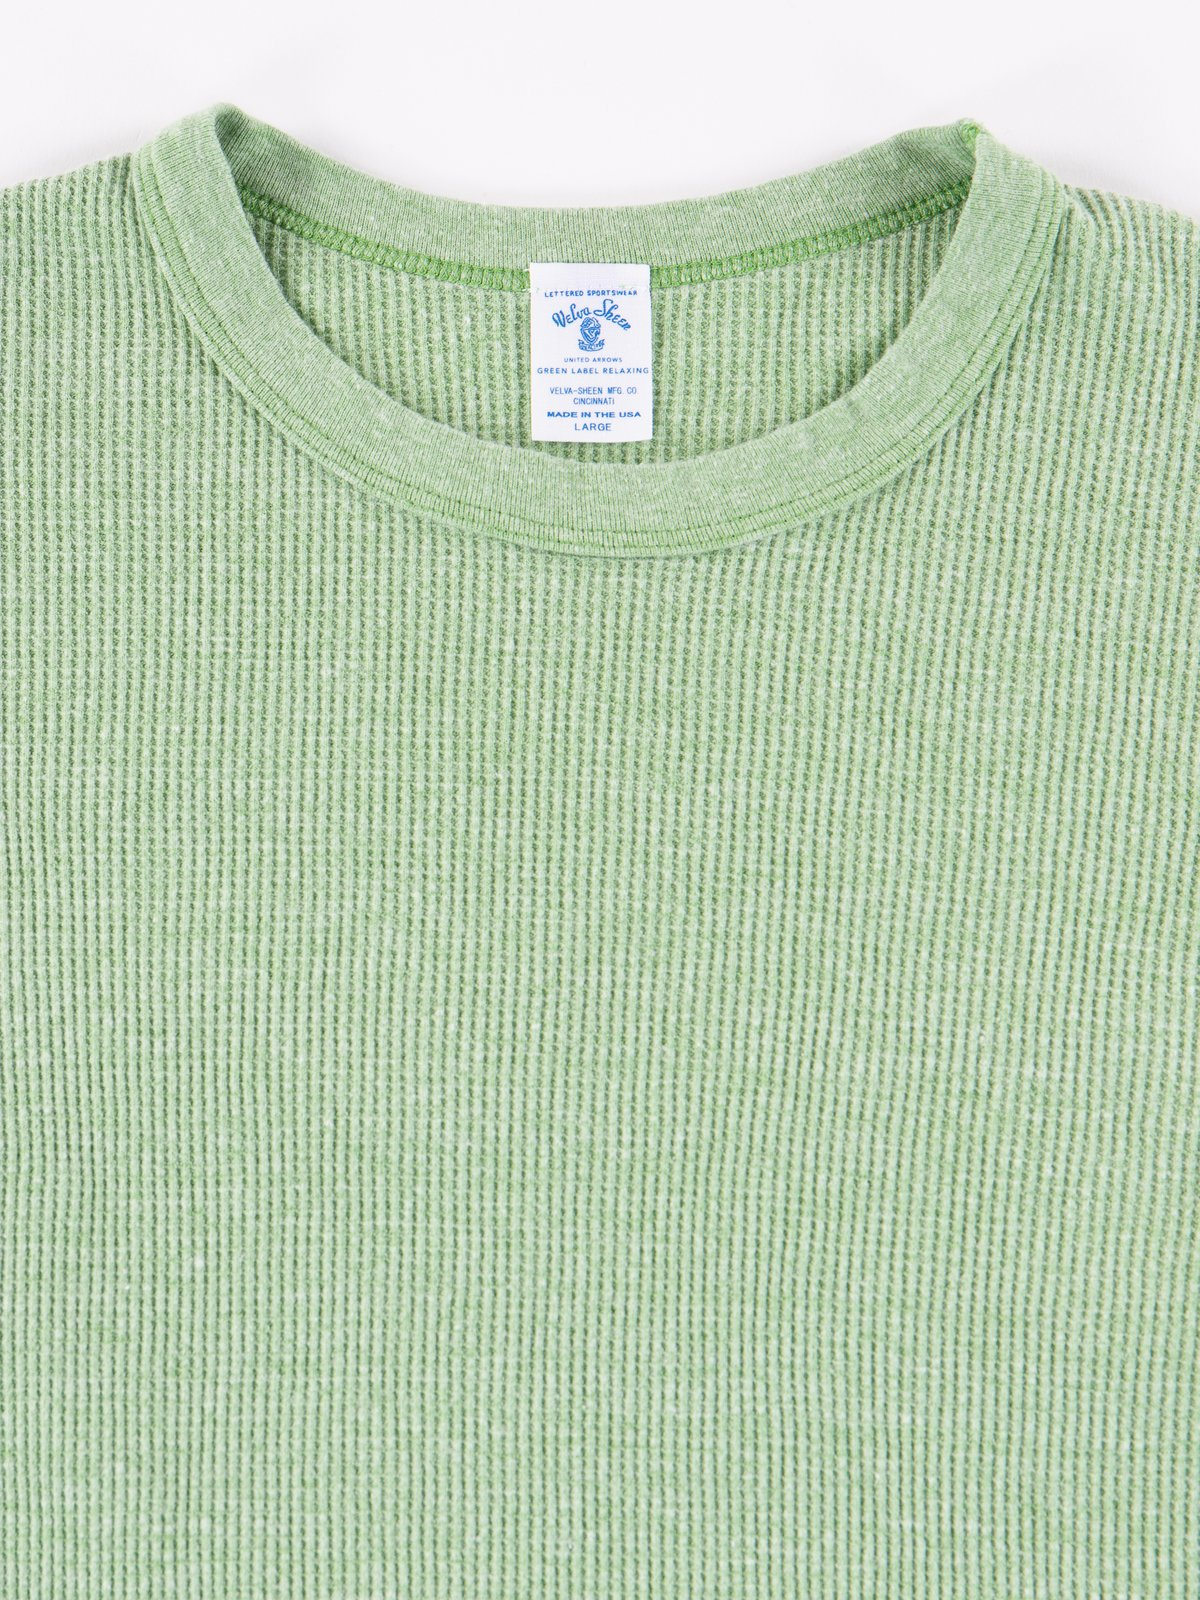 Heather Lime Tri Thermal T–Shirt - Image 2